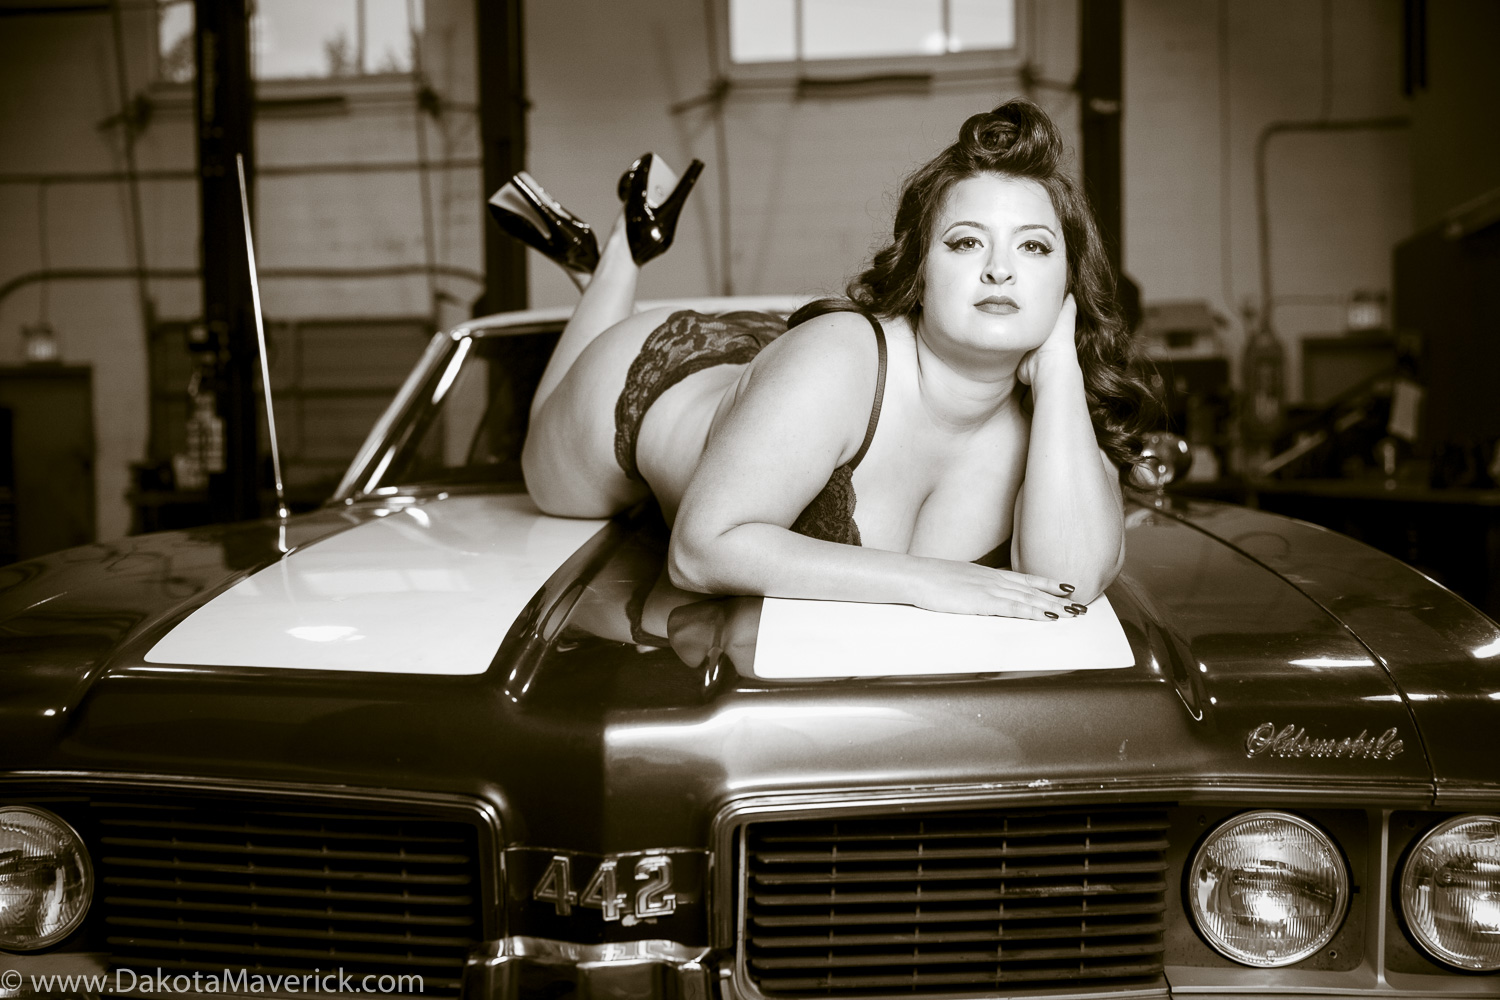 Vancouver Pinup Photographer - April (17 of 19).jpg